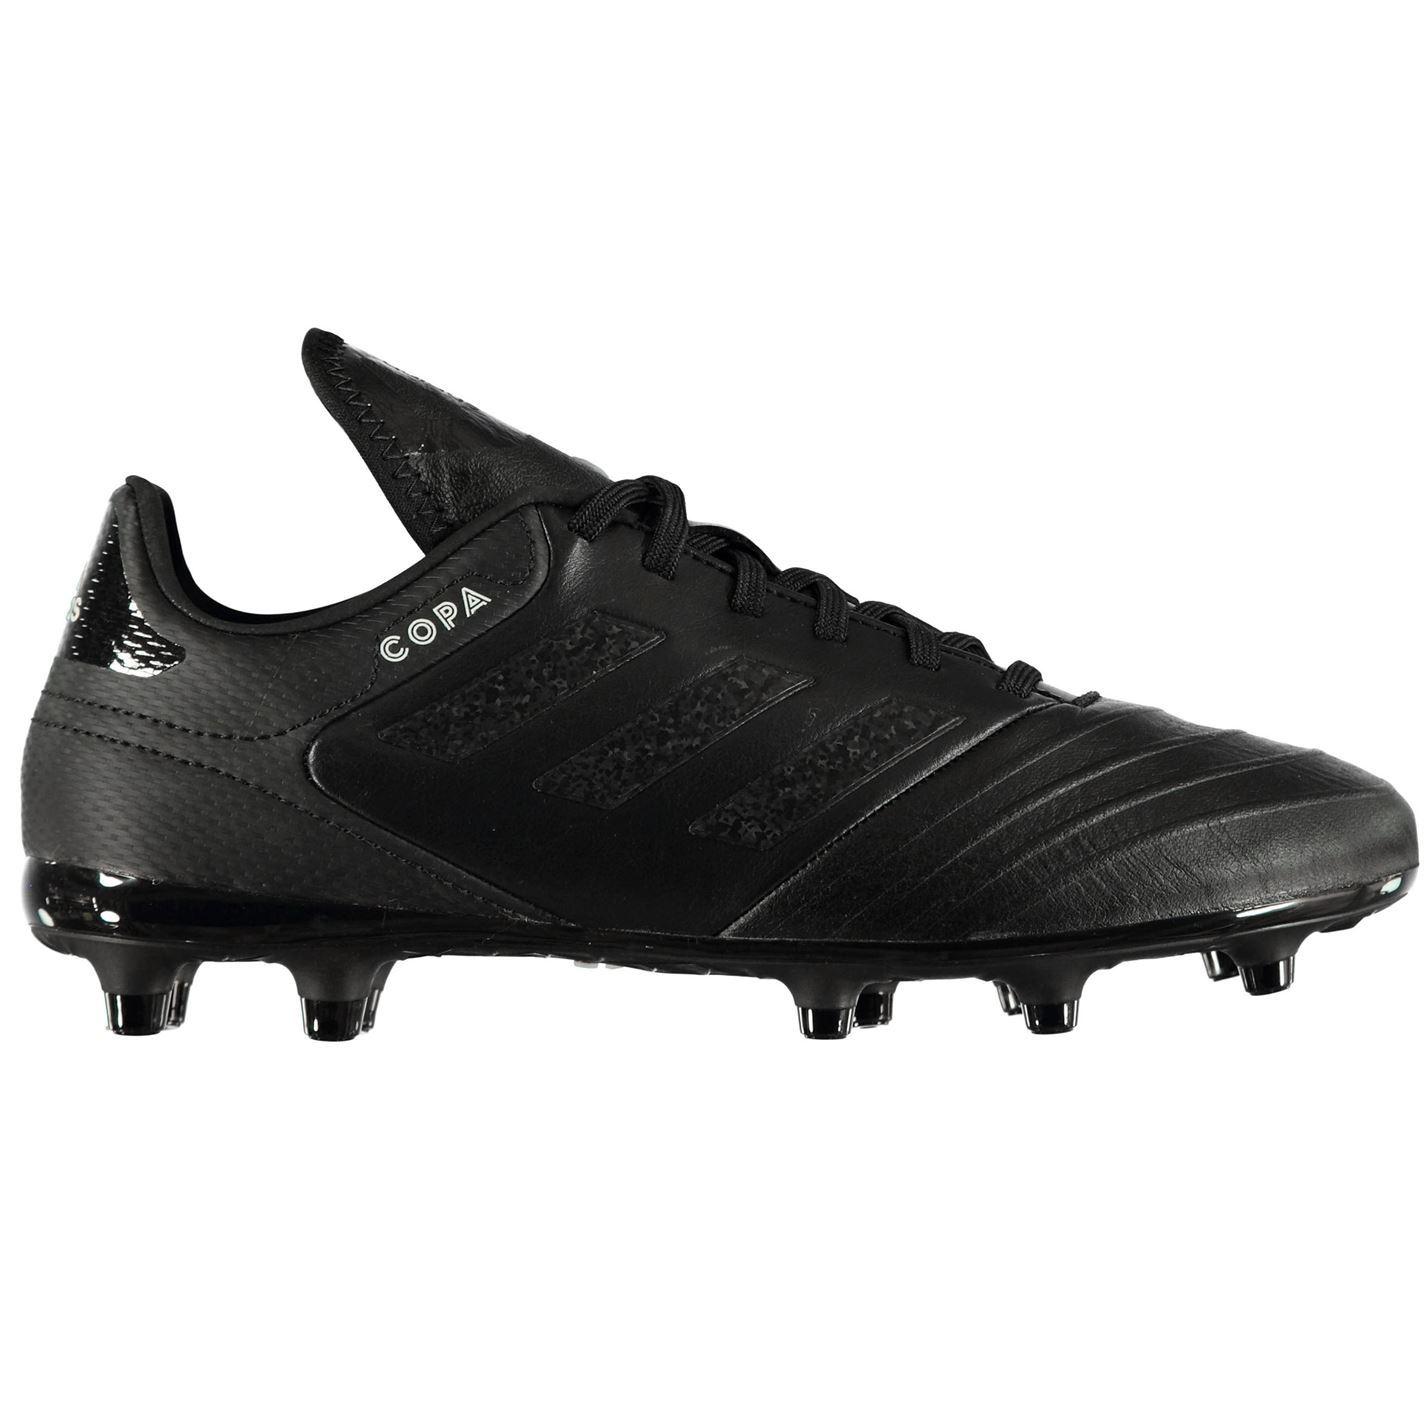 detailed pictures 2fdeb c87e4 adidas-Copa-18-3-FG-Football-Boots-Mens-